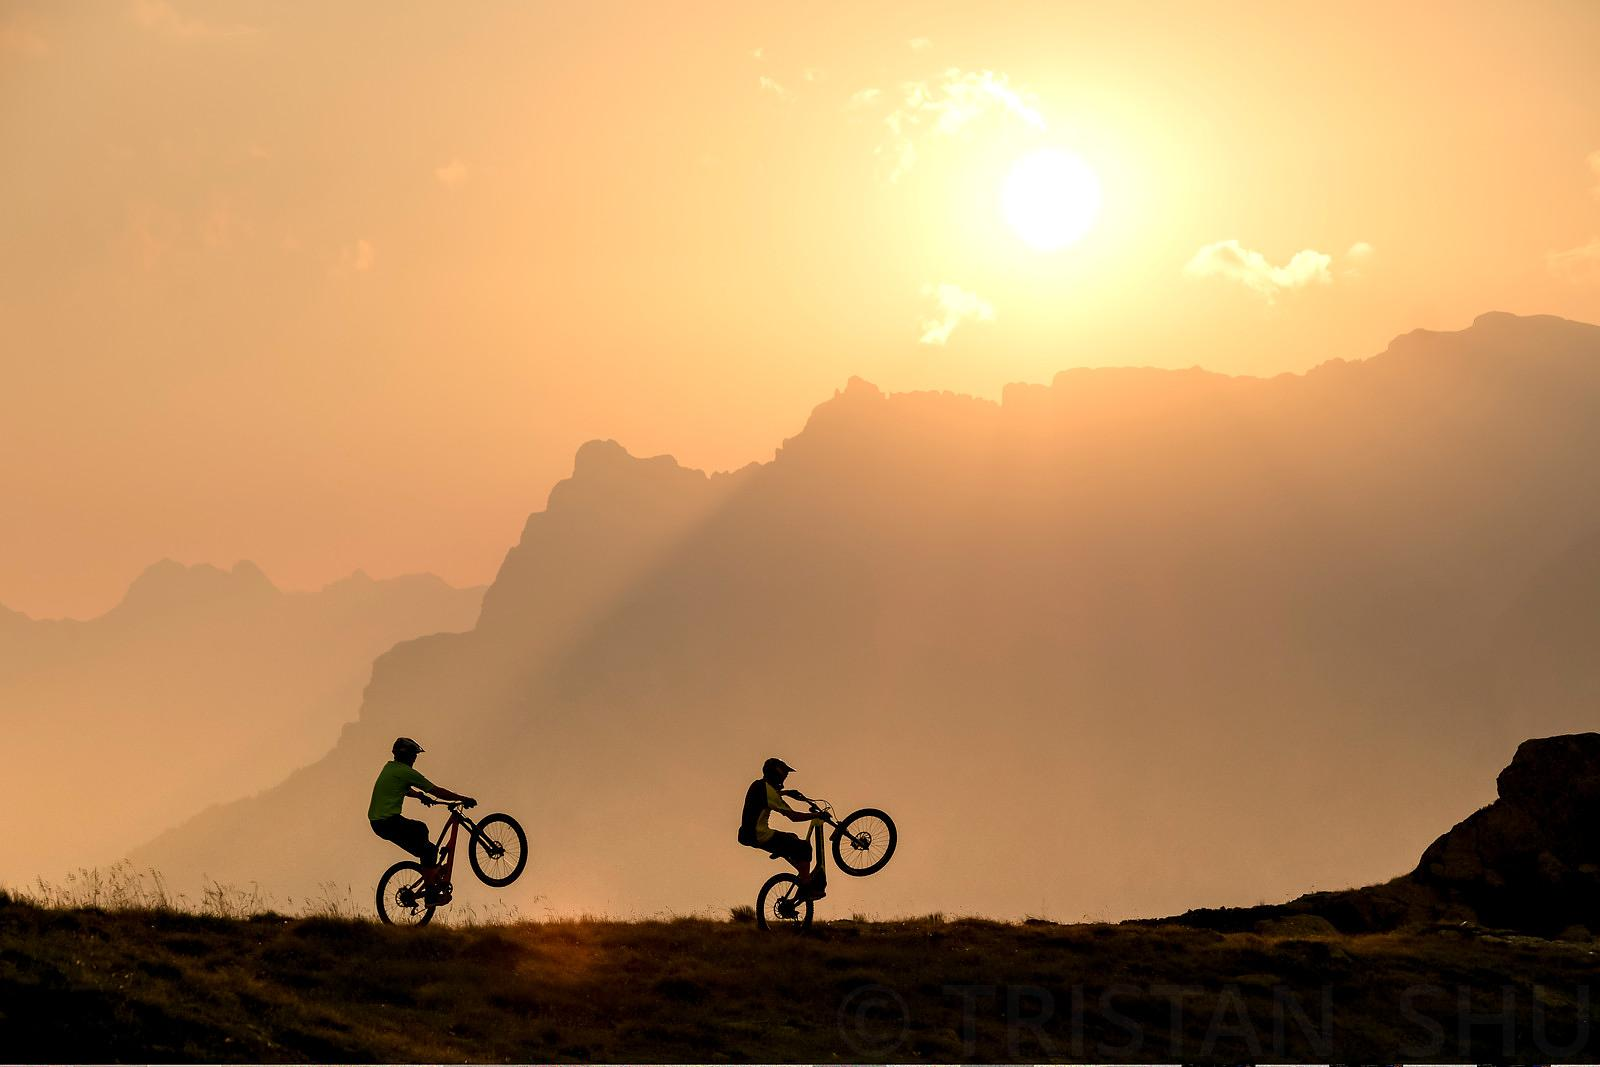 Wheeling at Sunset with Nick gowan and Gael Wirz